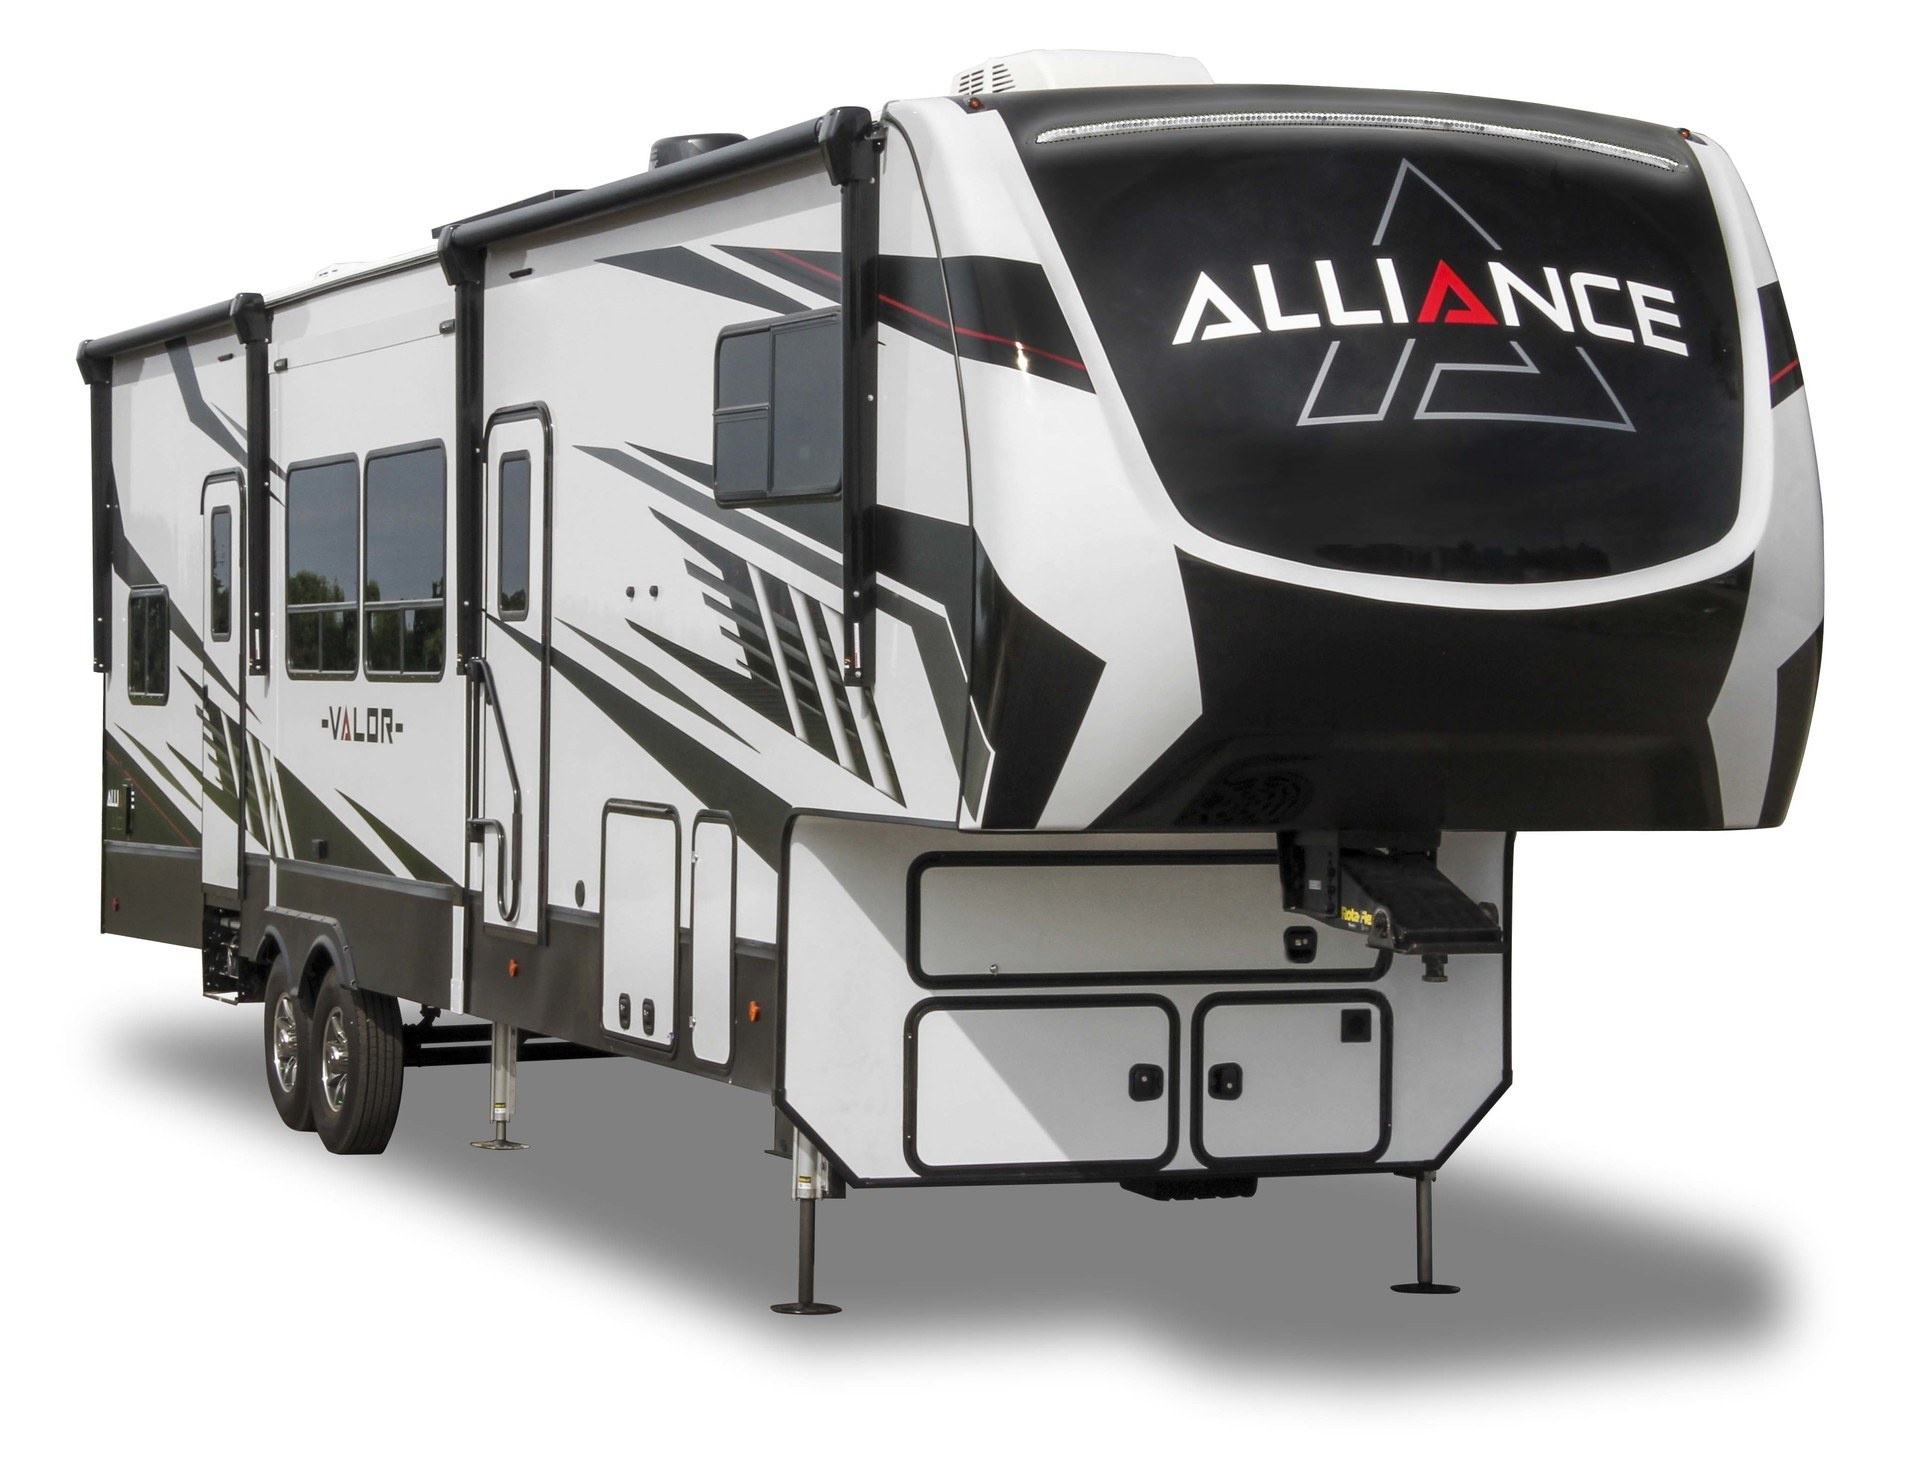 alliance rv introduces new toy hauler